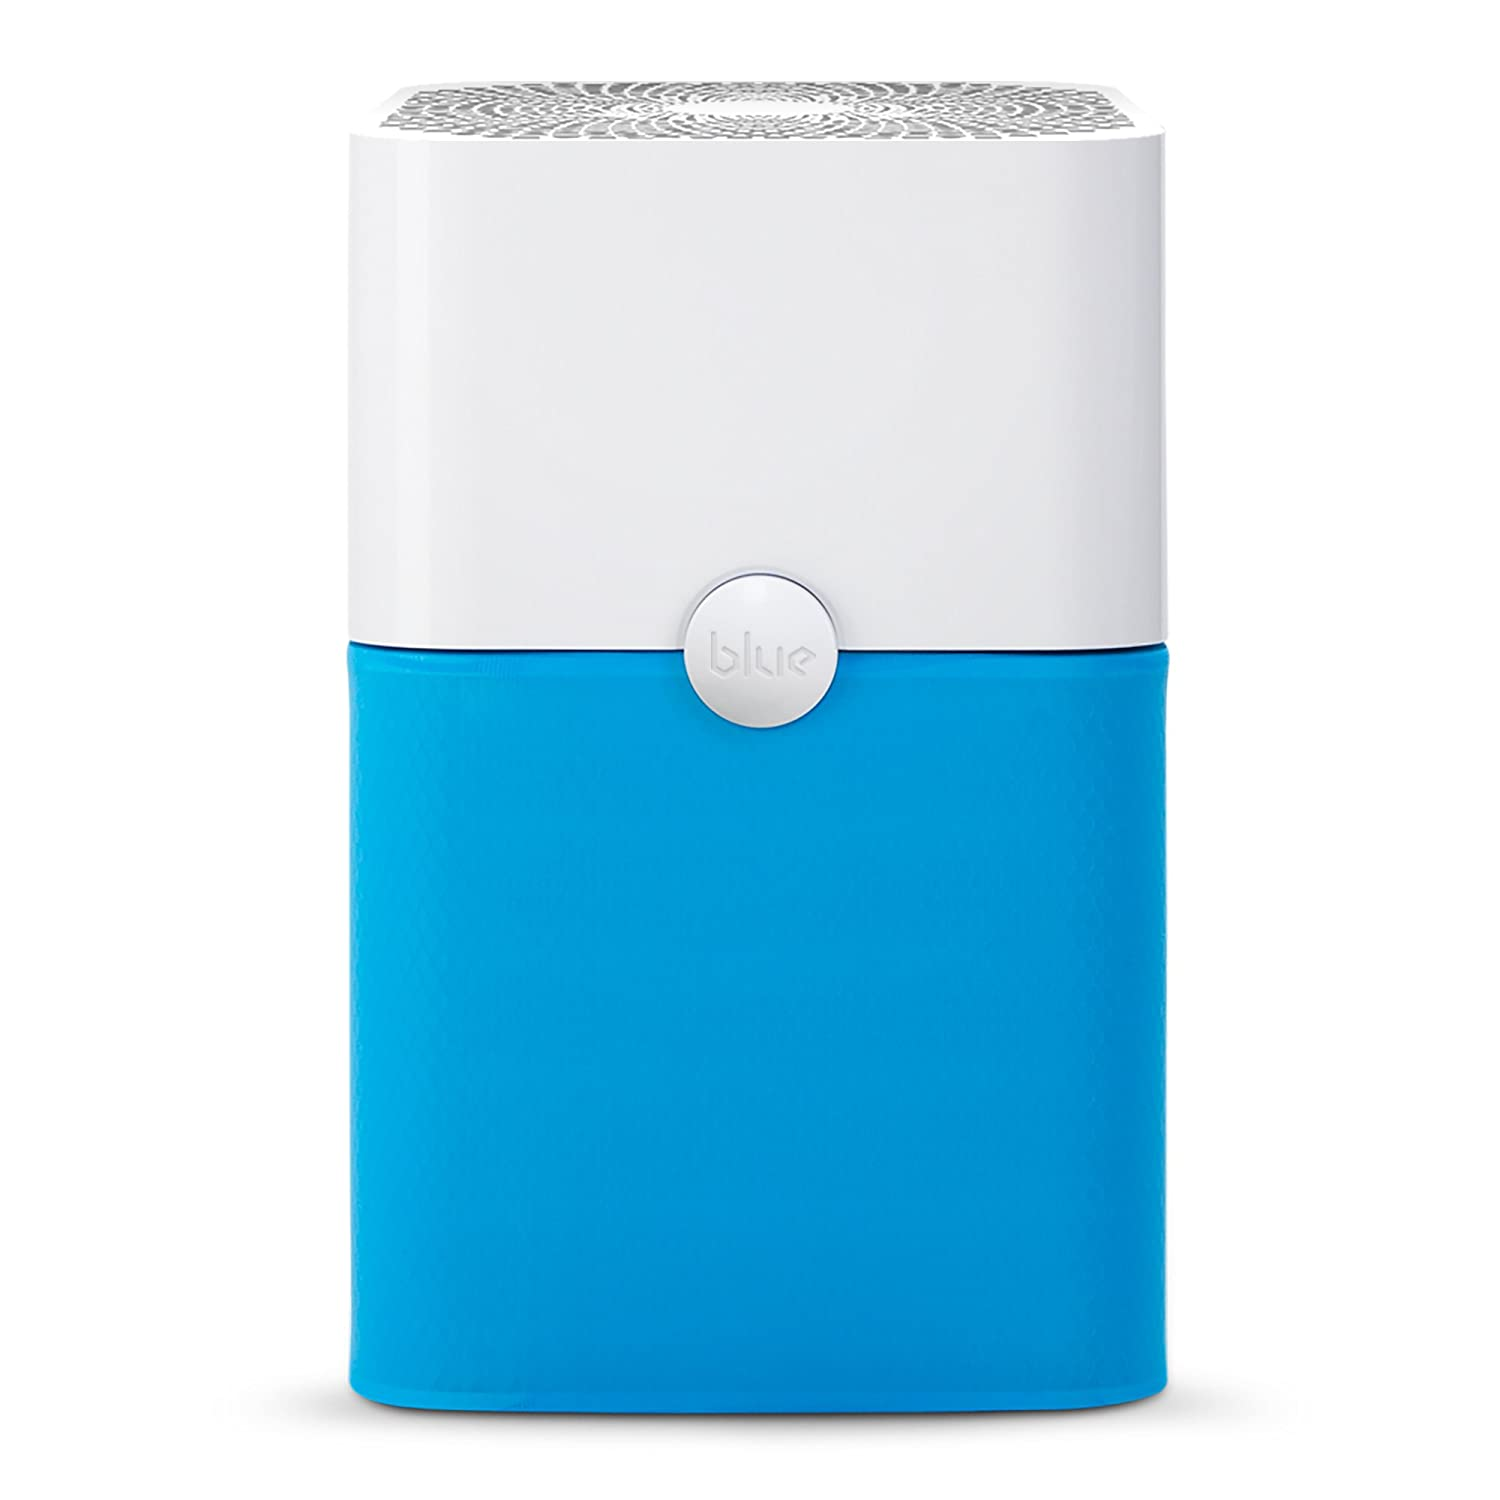 Blue Pure 211+ Air Purifier with Particle and Carbon Filter for Allergen and Odor Reduction